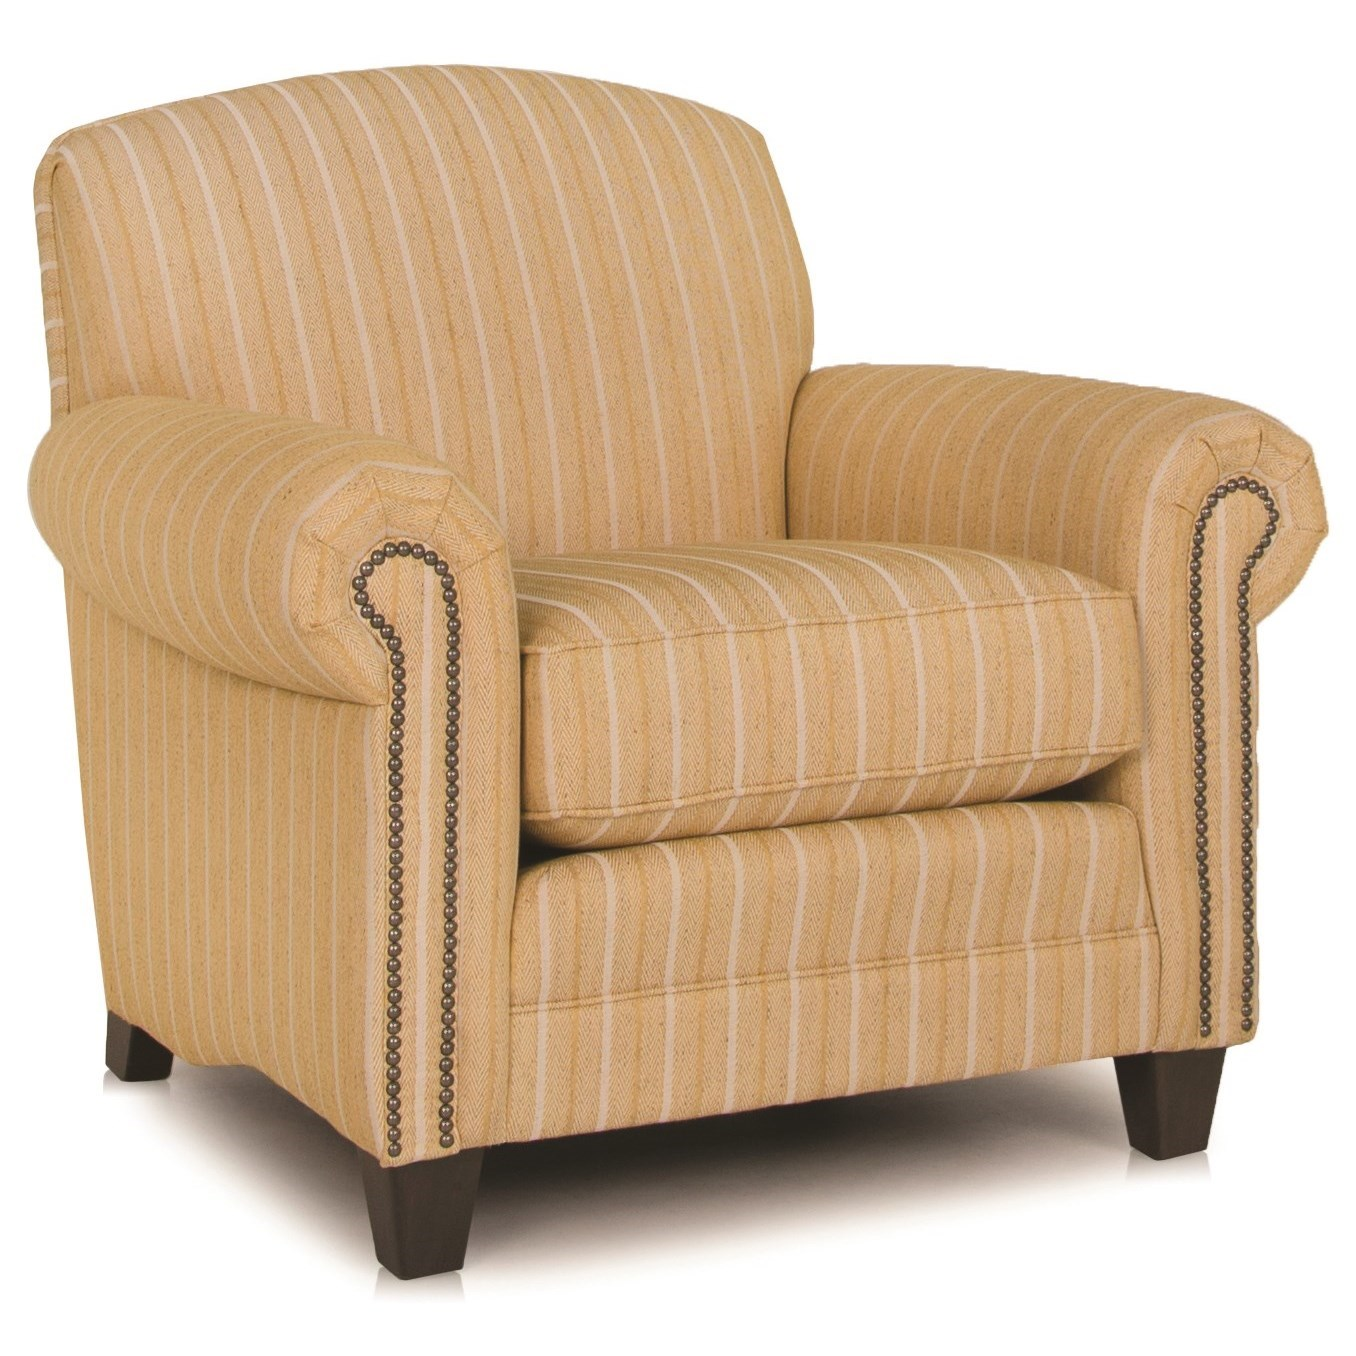 397 Upholstered Chair by Smith Brothers at Pilgrim Furniture City